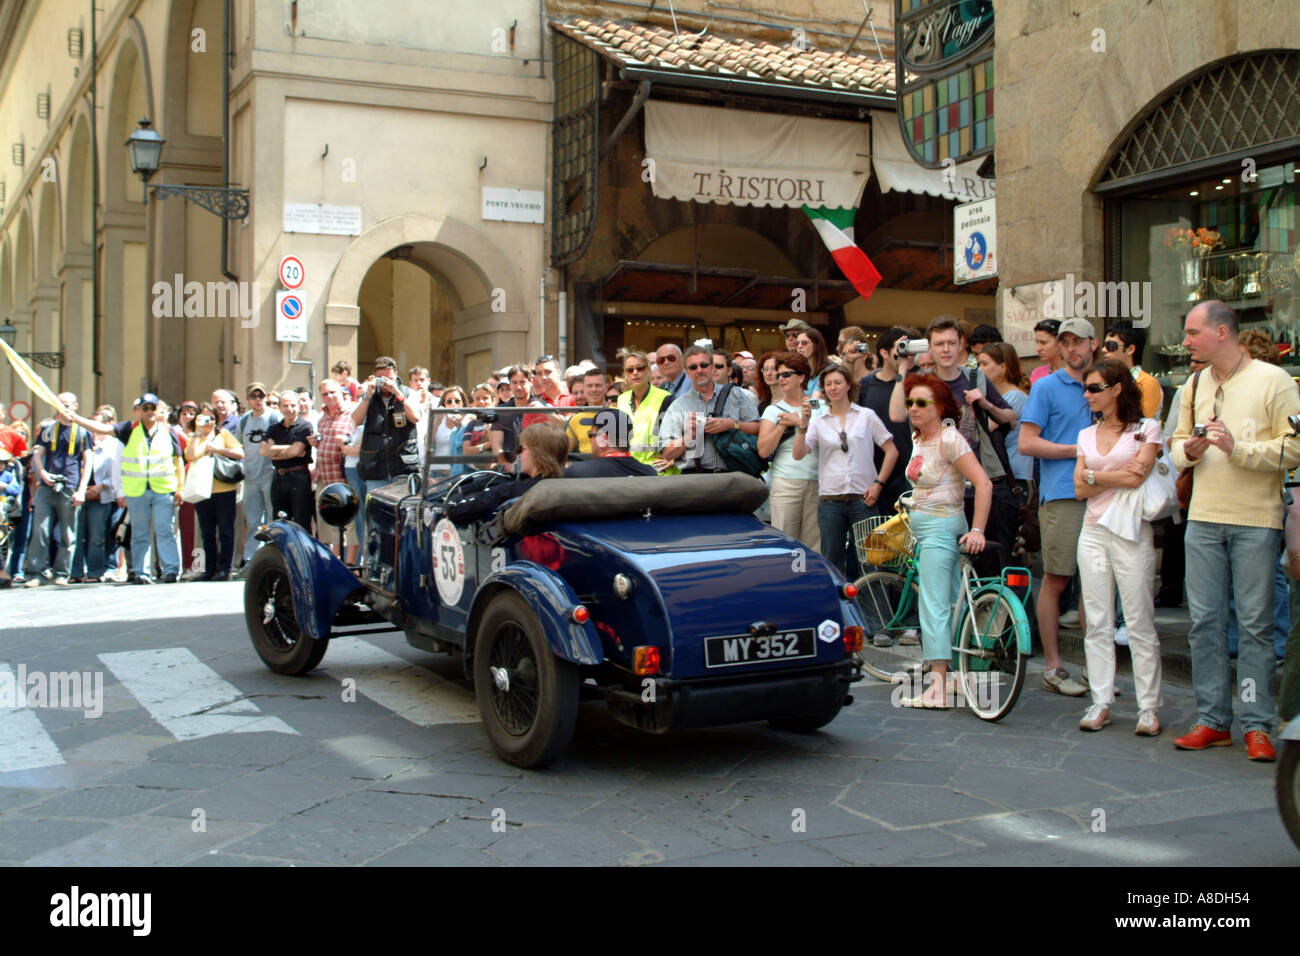 The Mille Miglia 2005 race passing through Florence Tuscany Italy EU - Stock Image